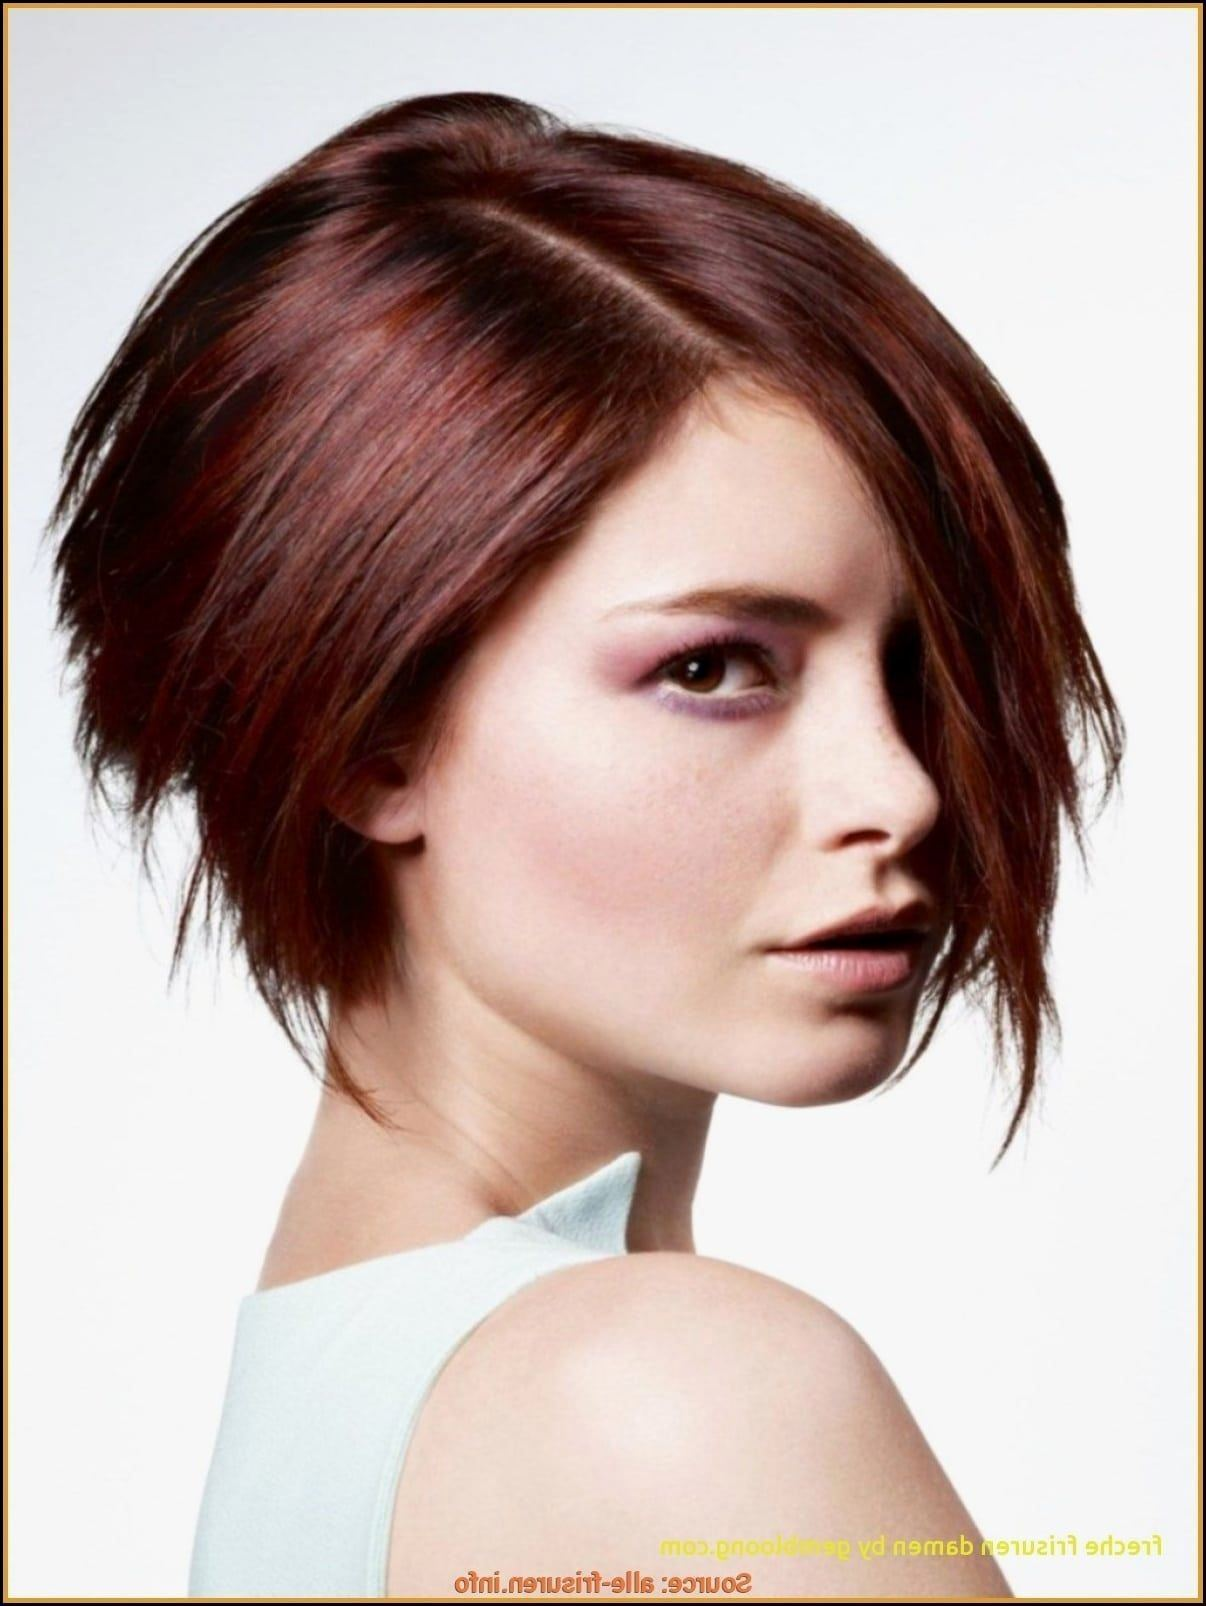 Stylische Frisuren Manner Bob Frisuren Hinten Gestuft Of Stylische